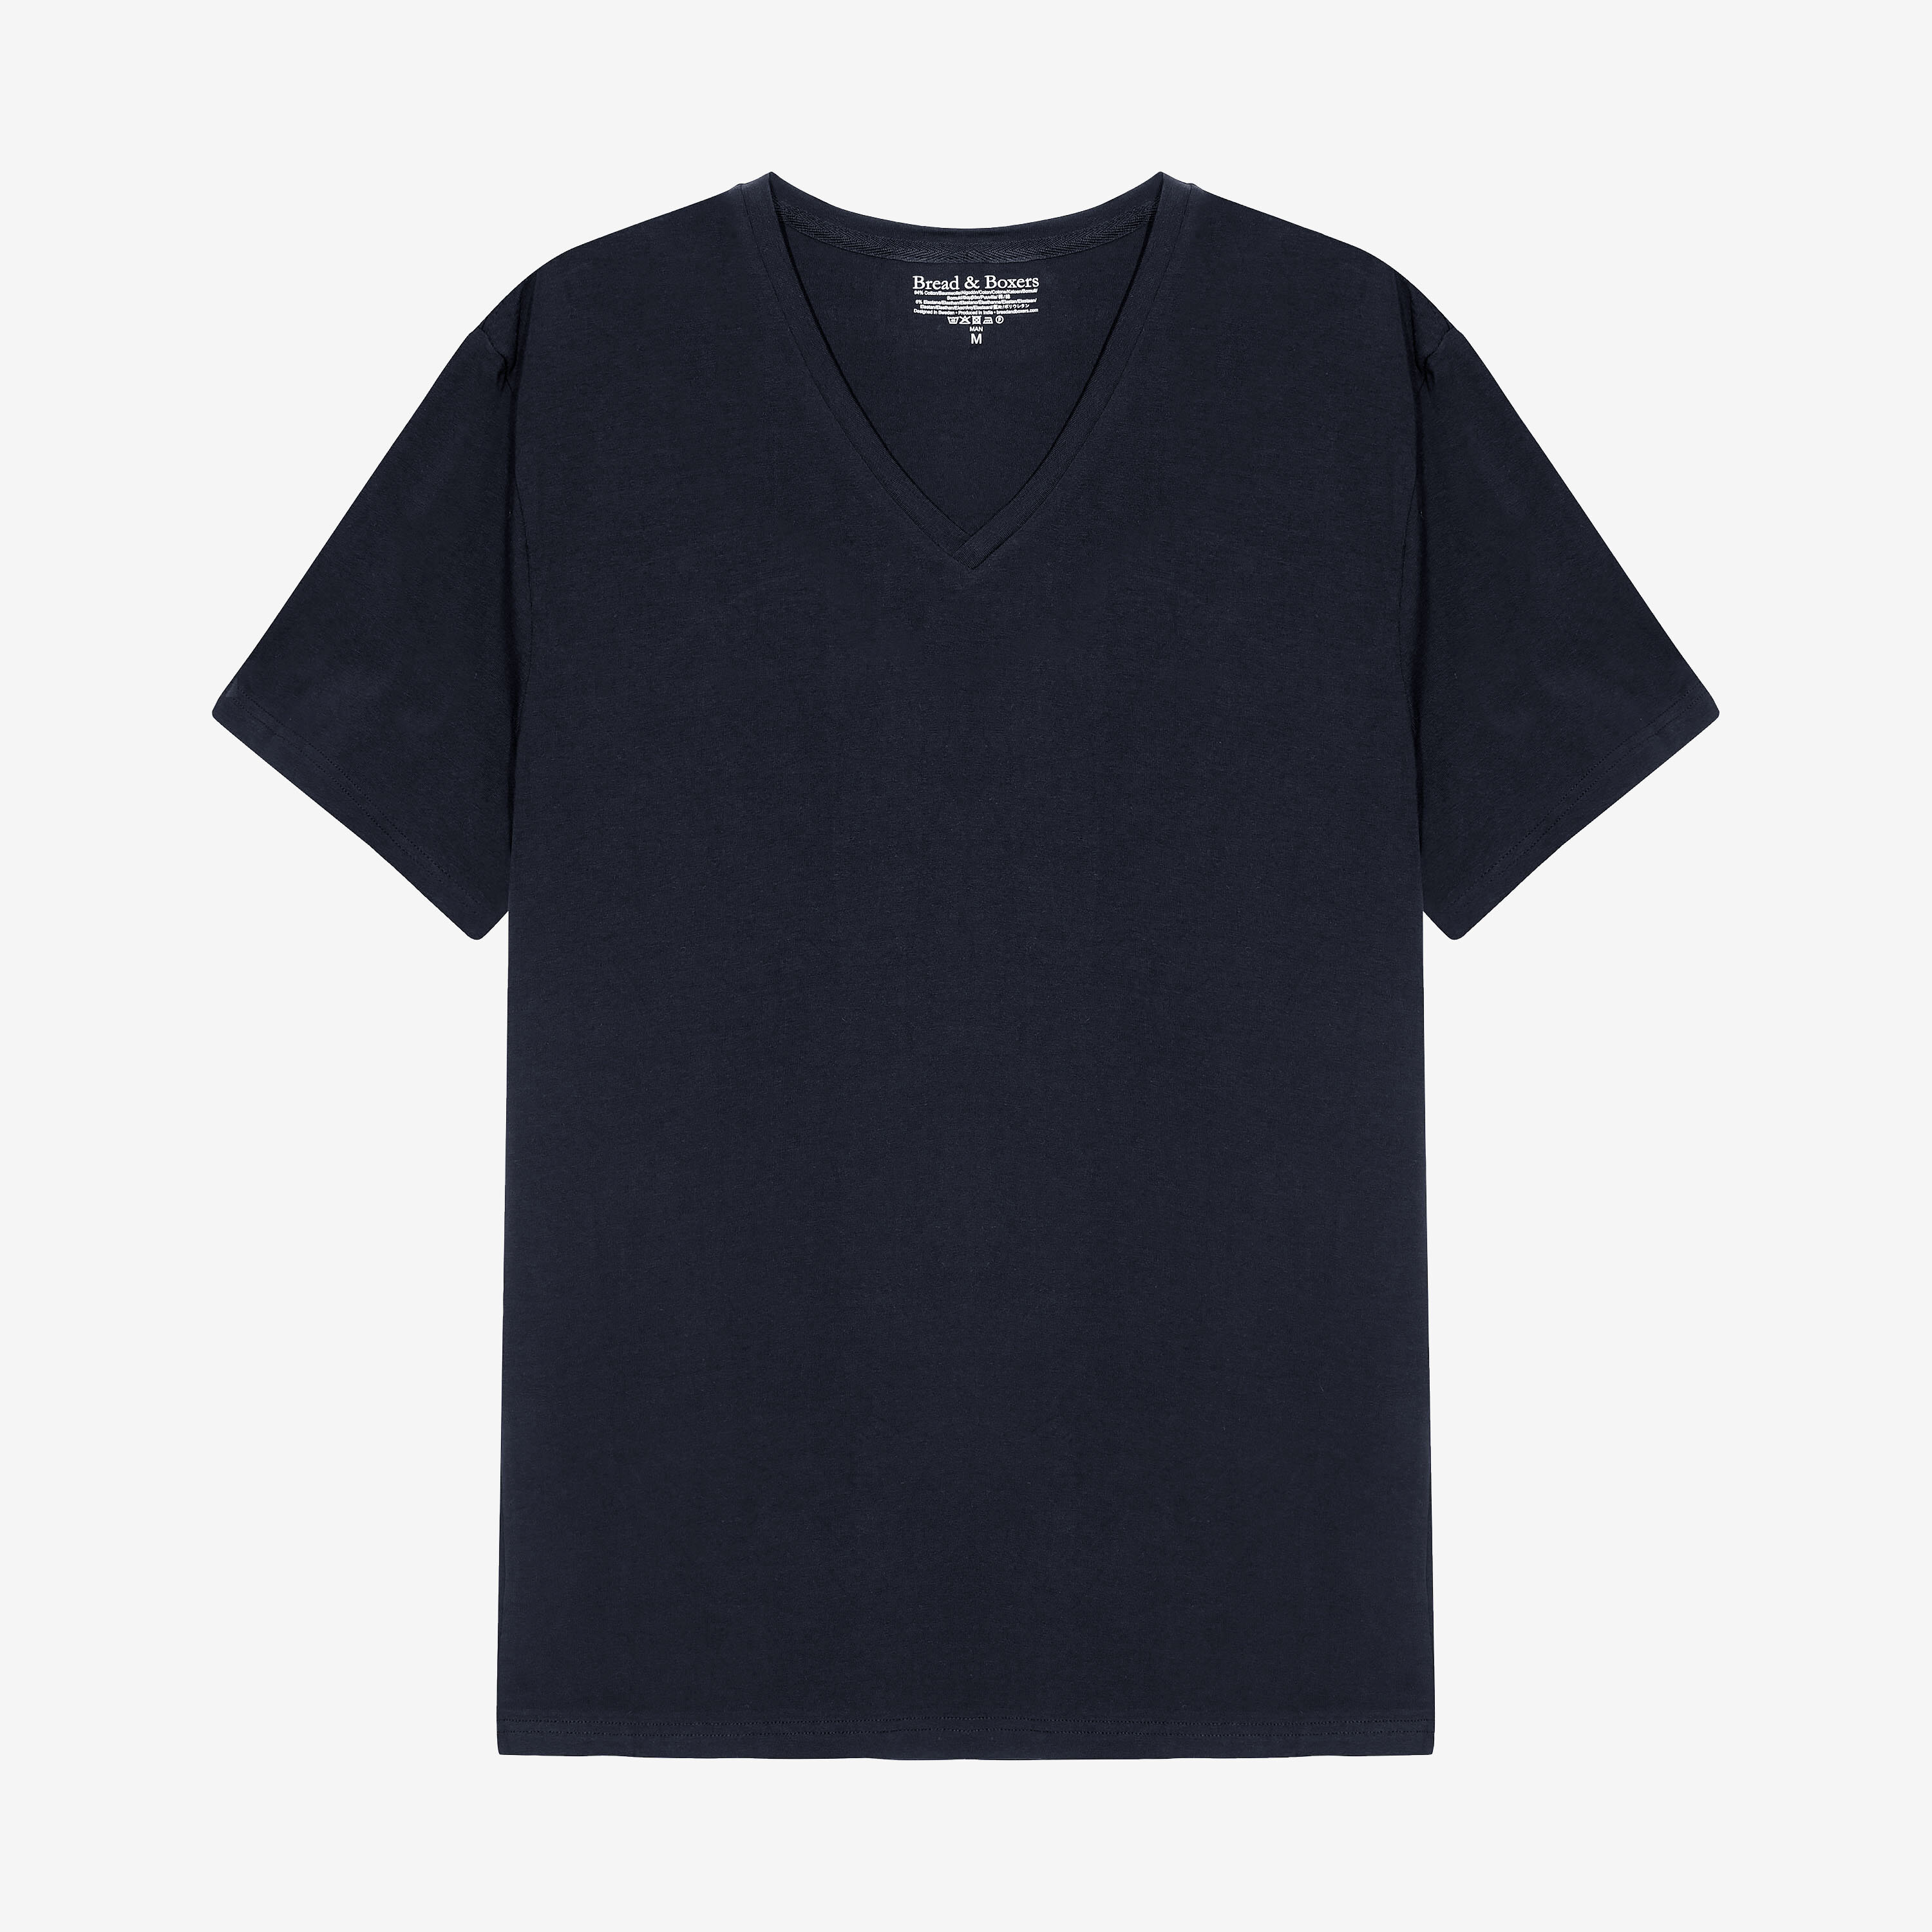 102204_Man_V-Neck_dark-navy_CO